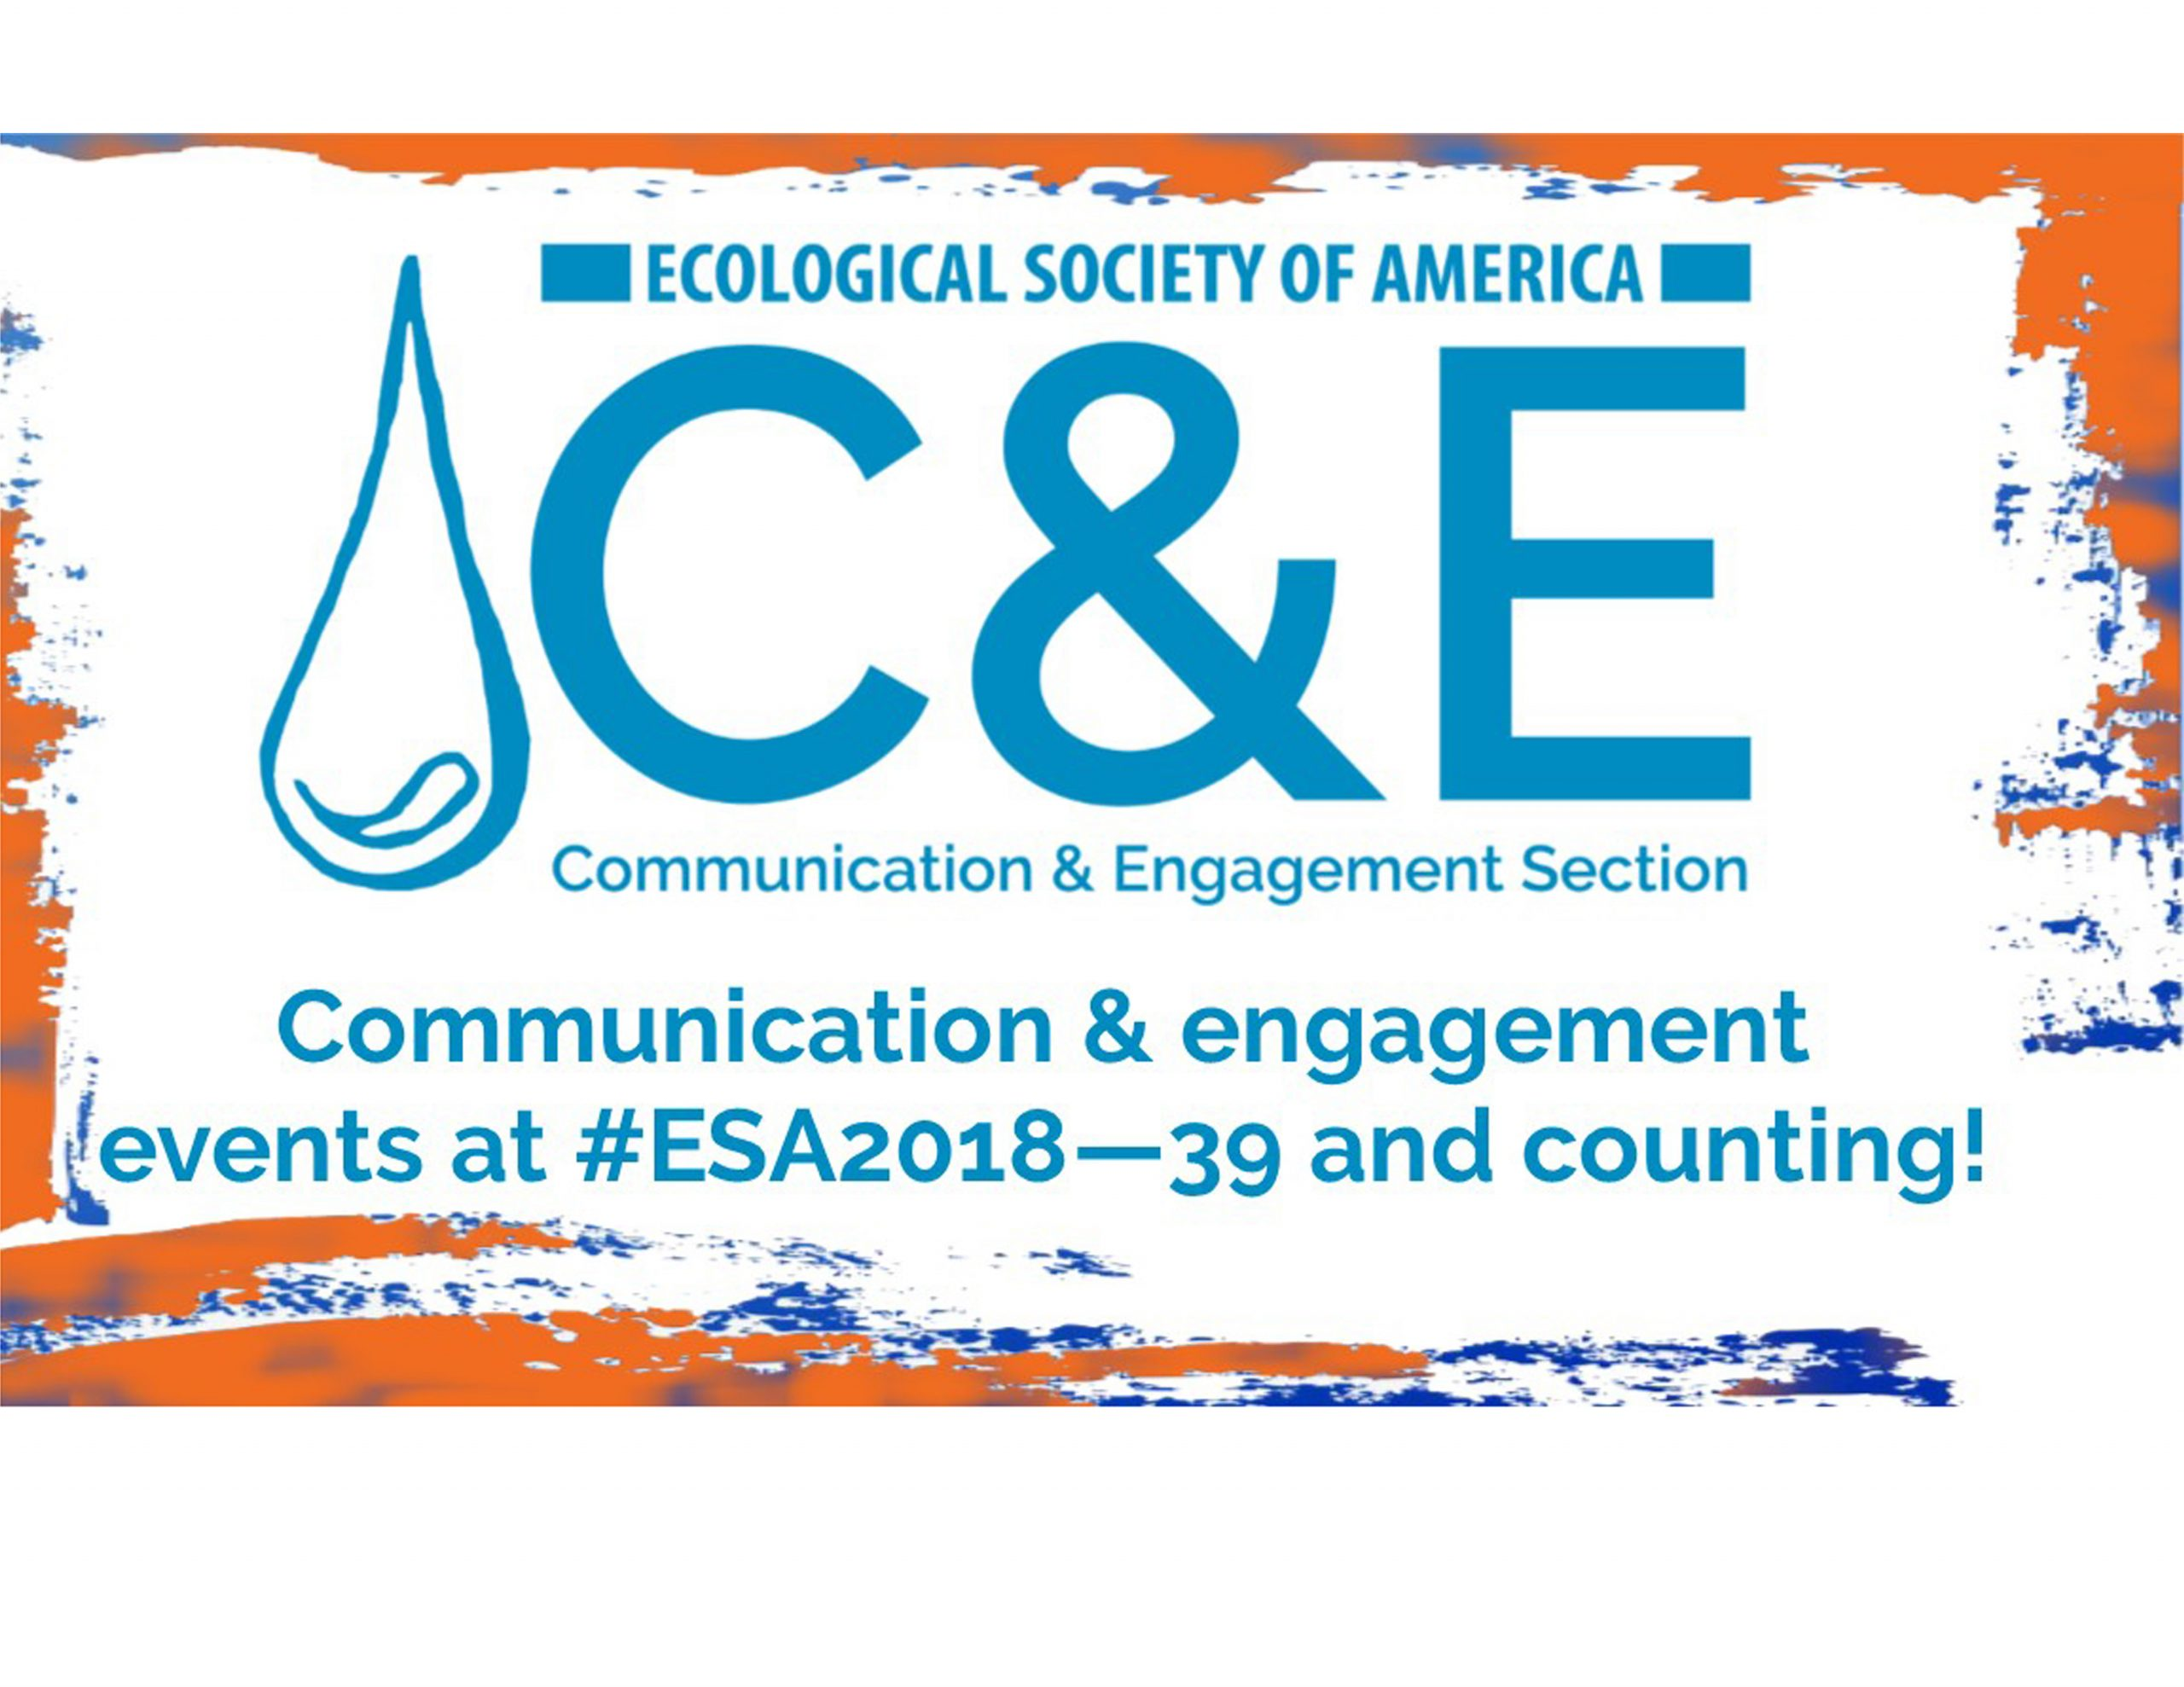 """Graffiti-style orange and blue frame around the words Communication & engagement events at #ESA2018 - 39 and counting. Image also includes the logo for the Communication & Engagement Section of the Ecological Society of America, which features a blue water droplet, the letters C&E, and above them """"Ecological Society of America."""" Below, the name of the section is written out."""